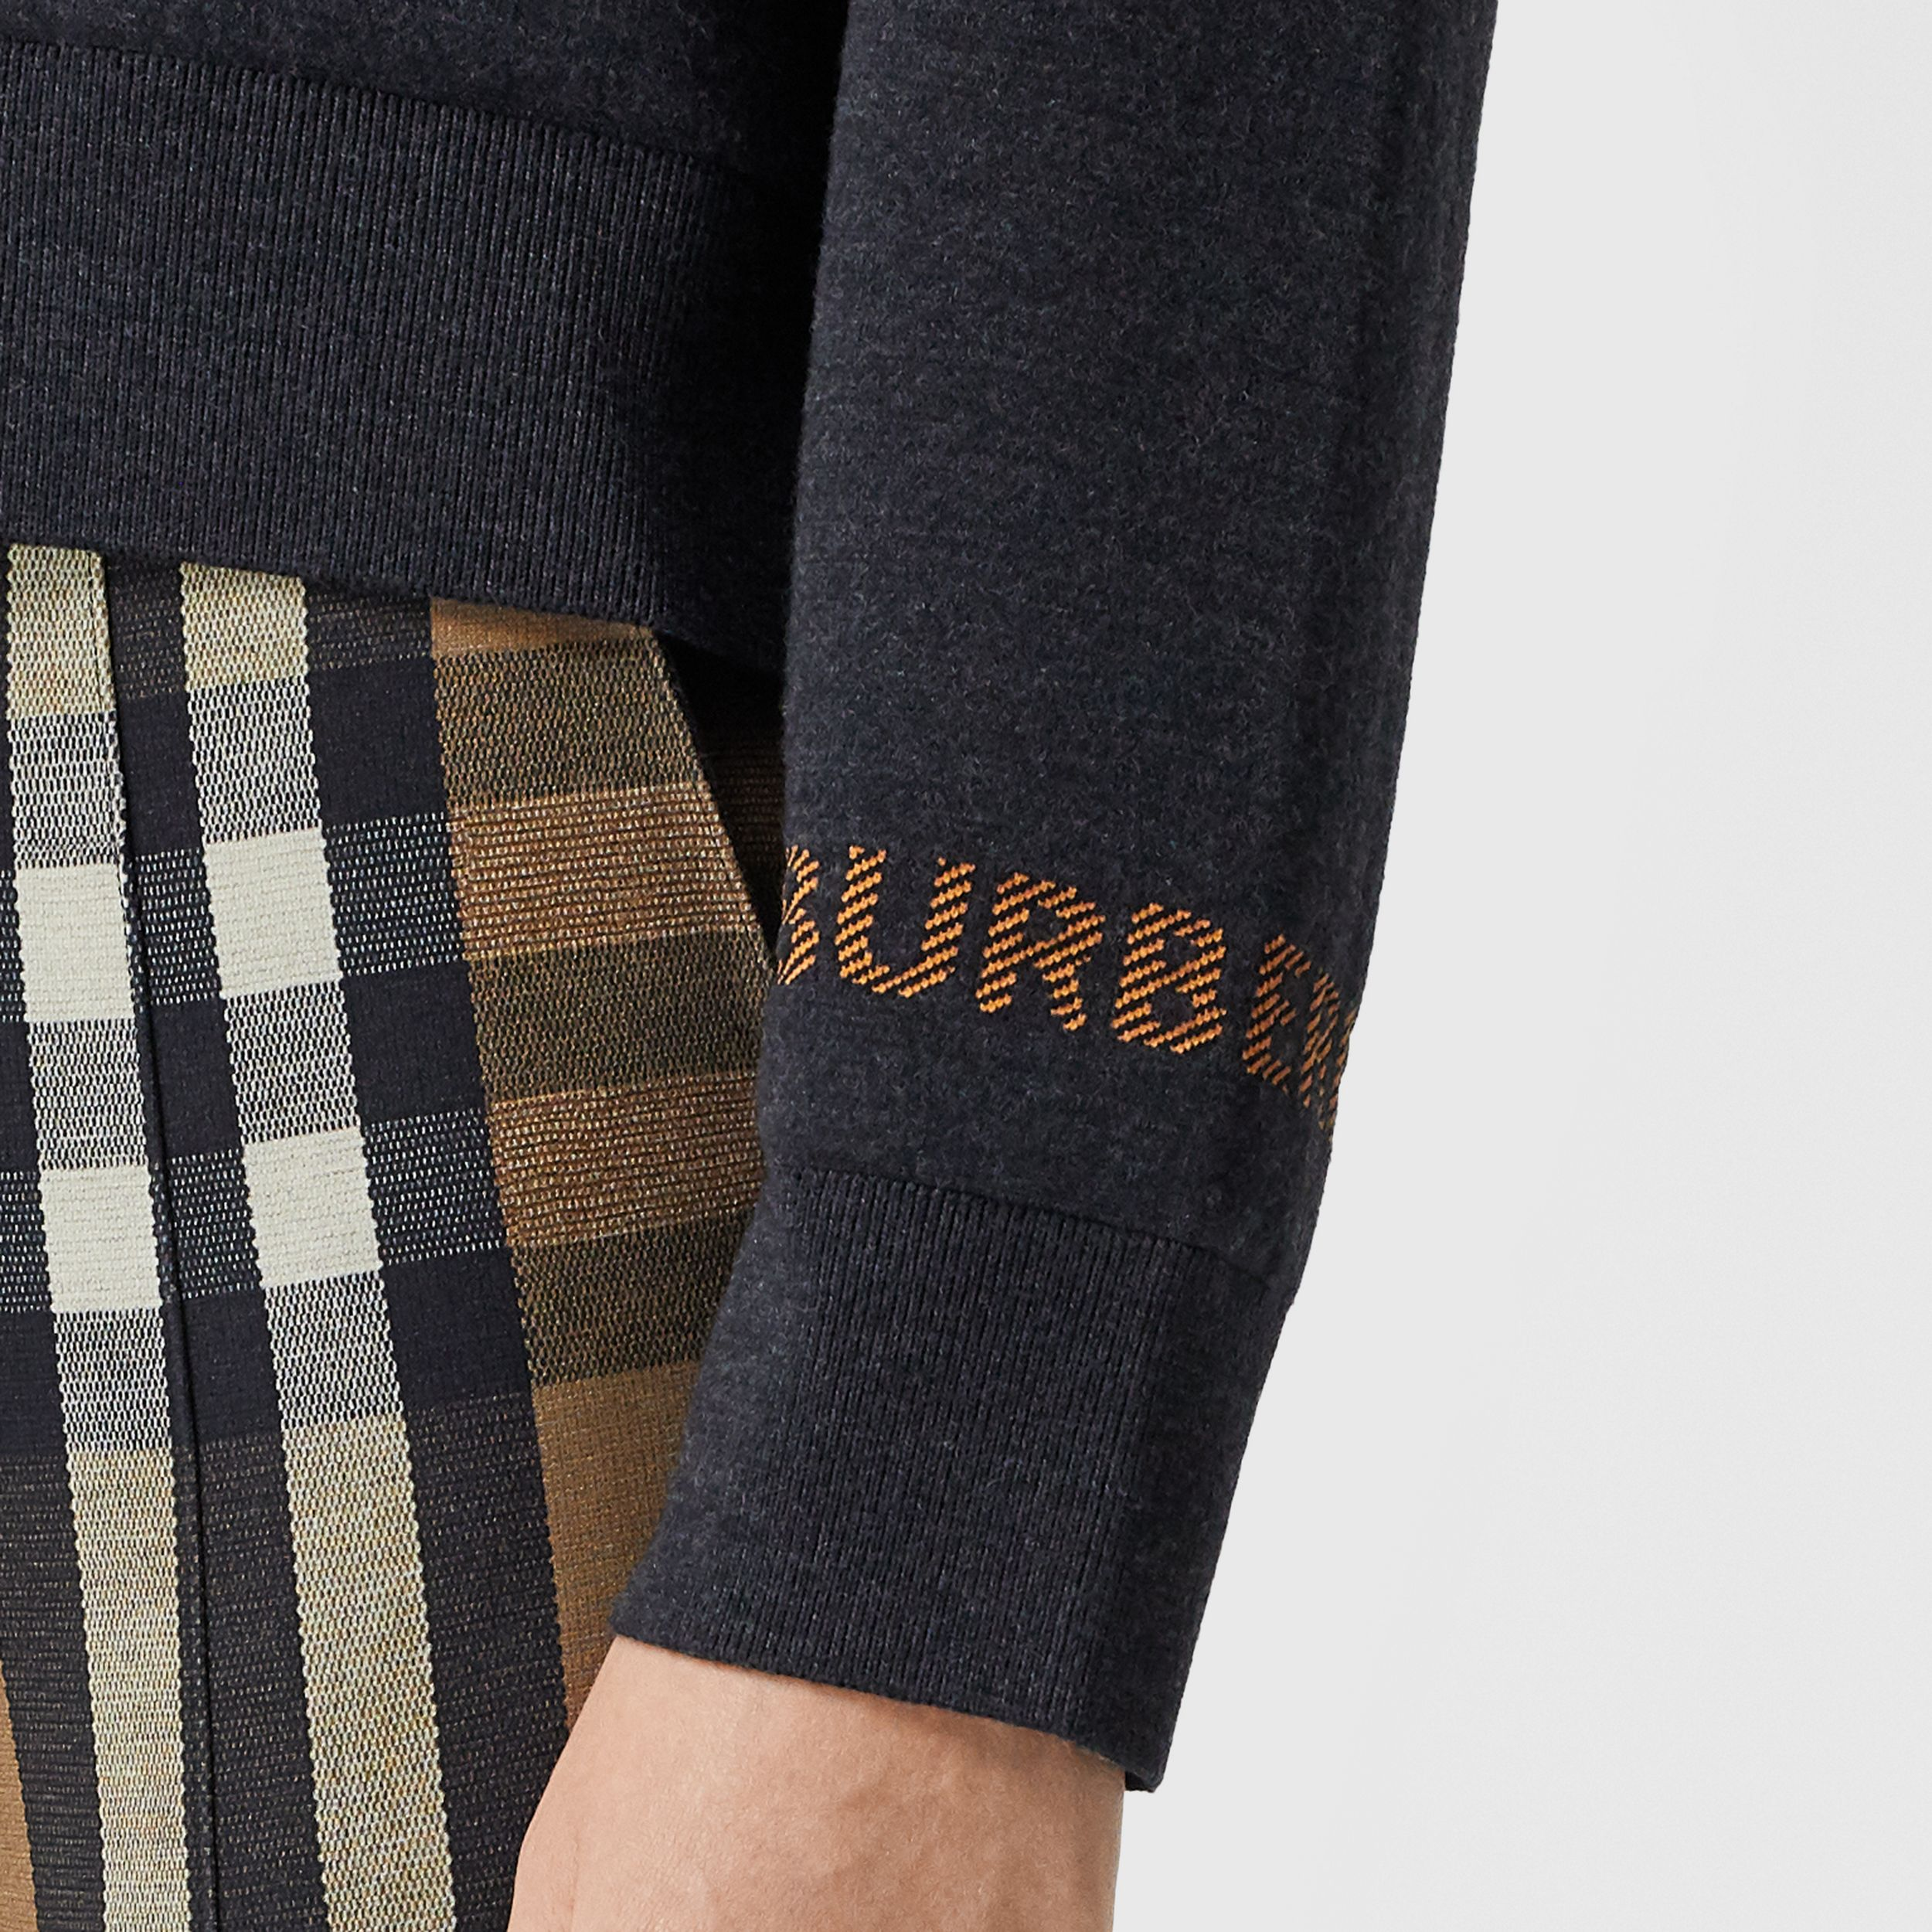 Logo Technical Merino Wool Jacquard Sweater in Charcoal Melange - Women | Burberry United Kingdom - 2